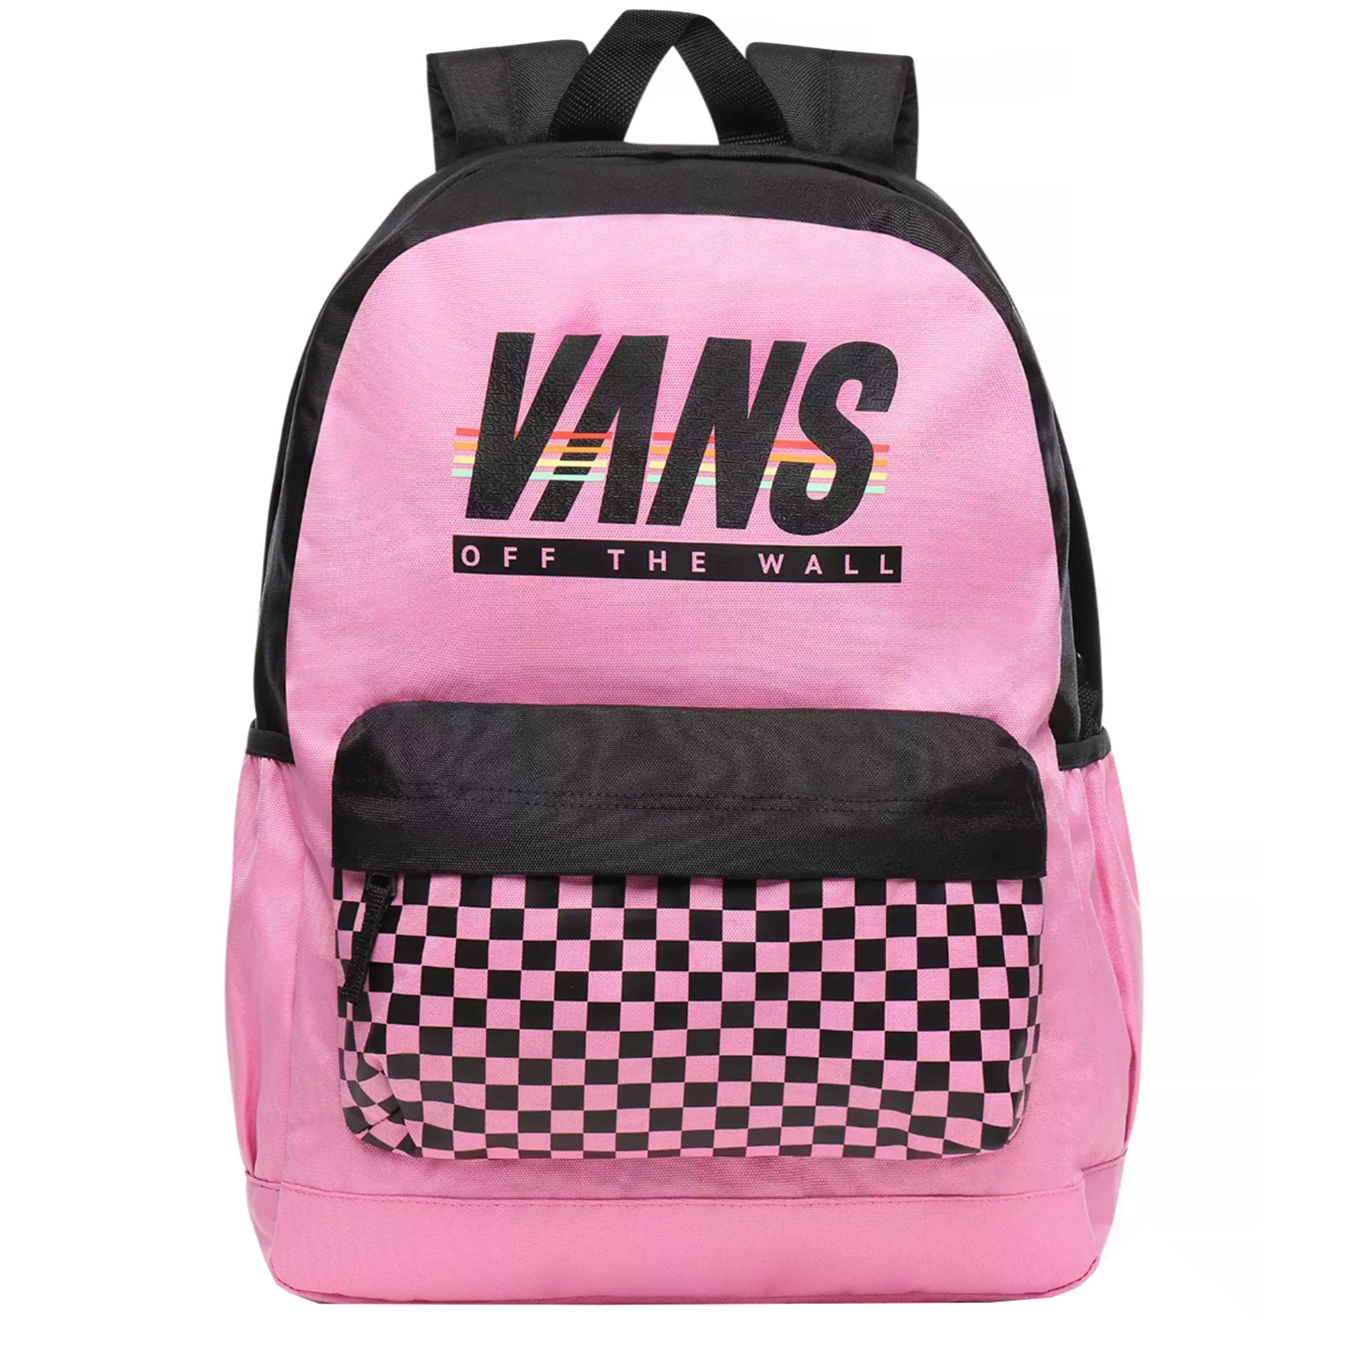 Vans Sporty Realm Plus Backpack fuchsia pink/sport stripe backpack